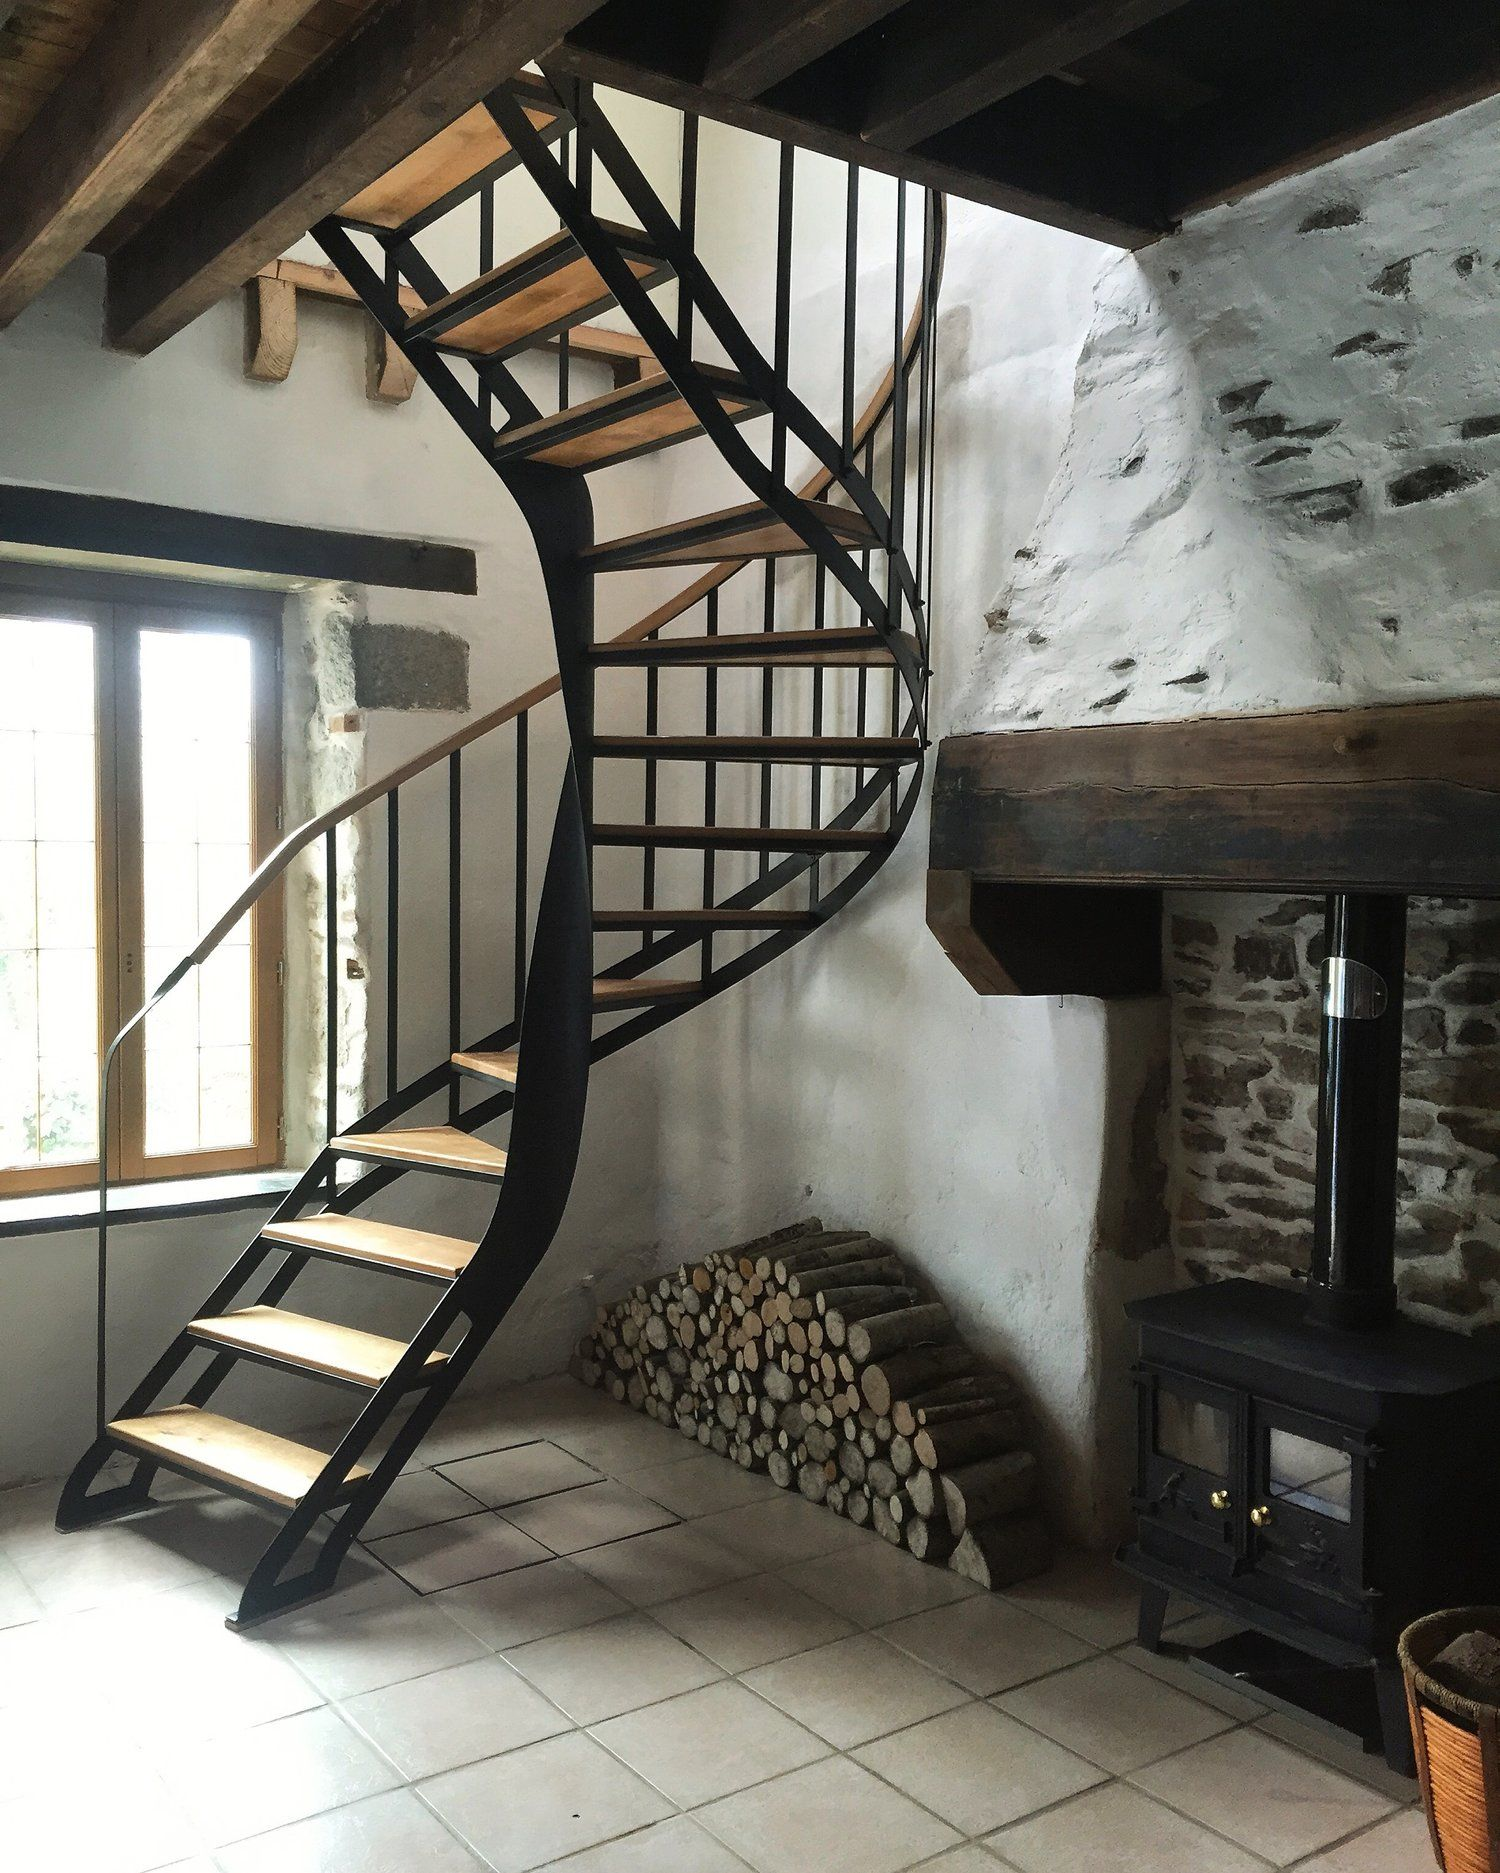 Woco Ltd Bespoke Painted Steel And Oak Spiral Staircase Fitting In A Tight  Corner Of An